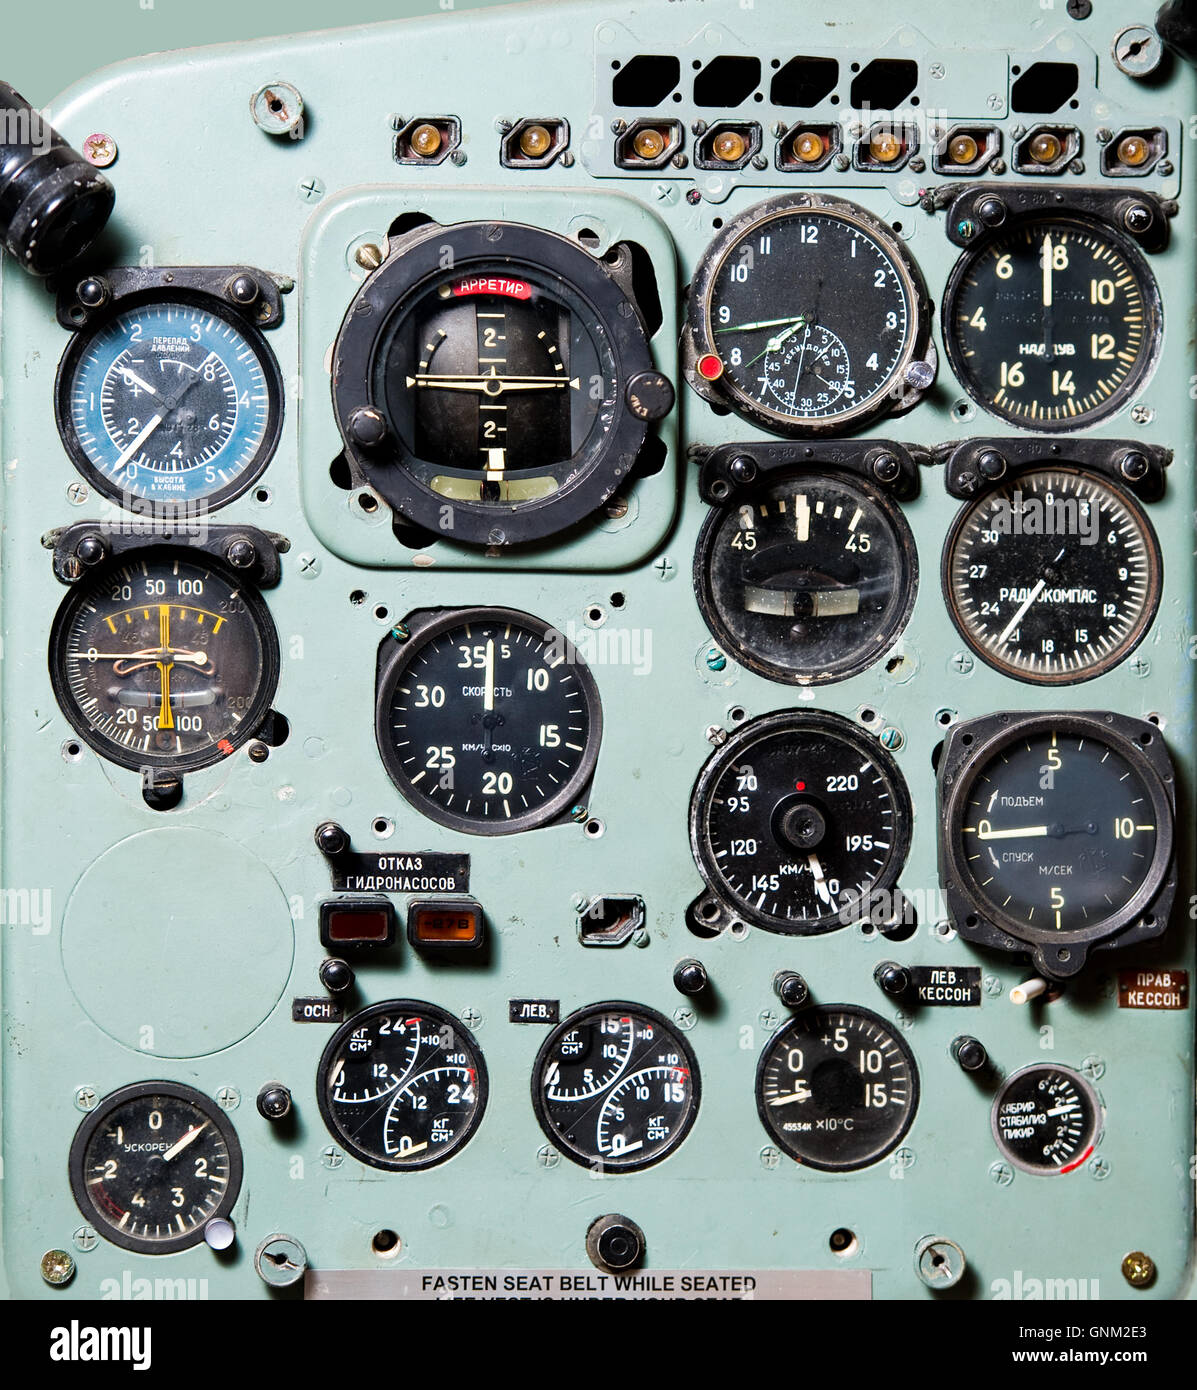 Detail of a airplane cockpit with various indicators and buttons - Stock Image